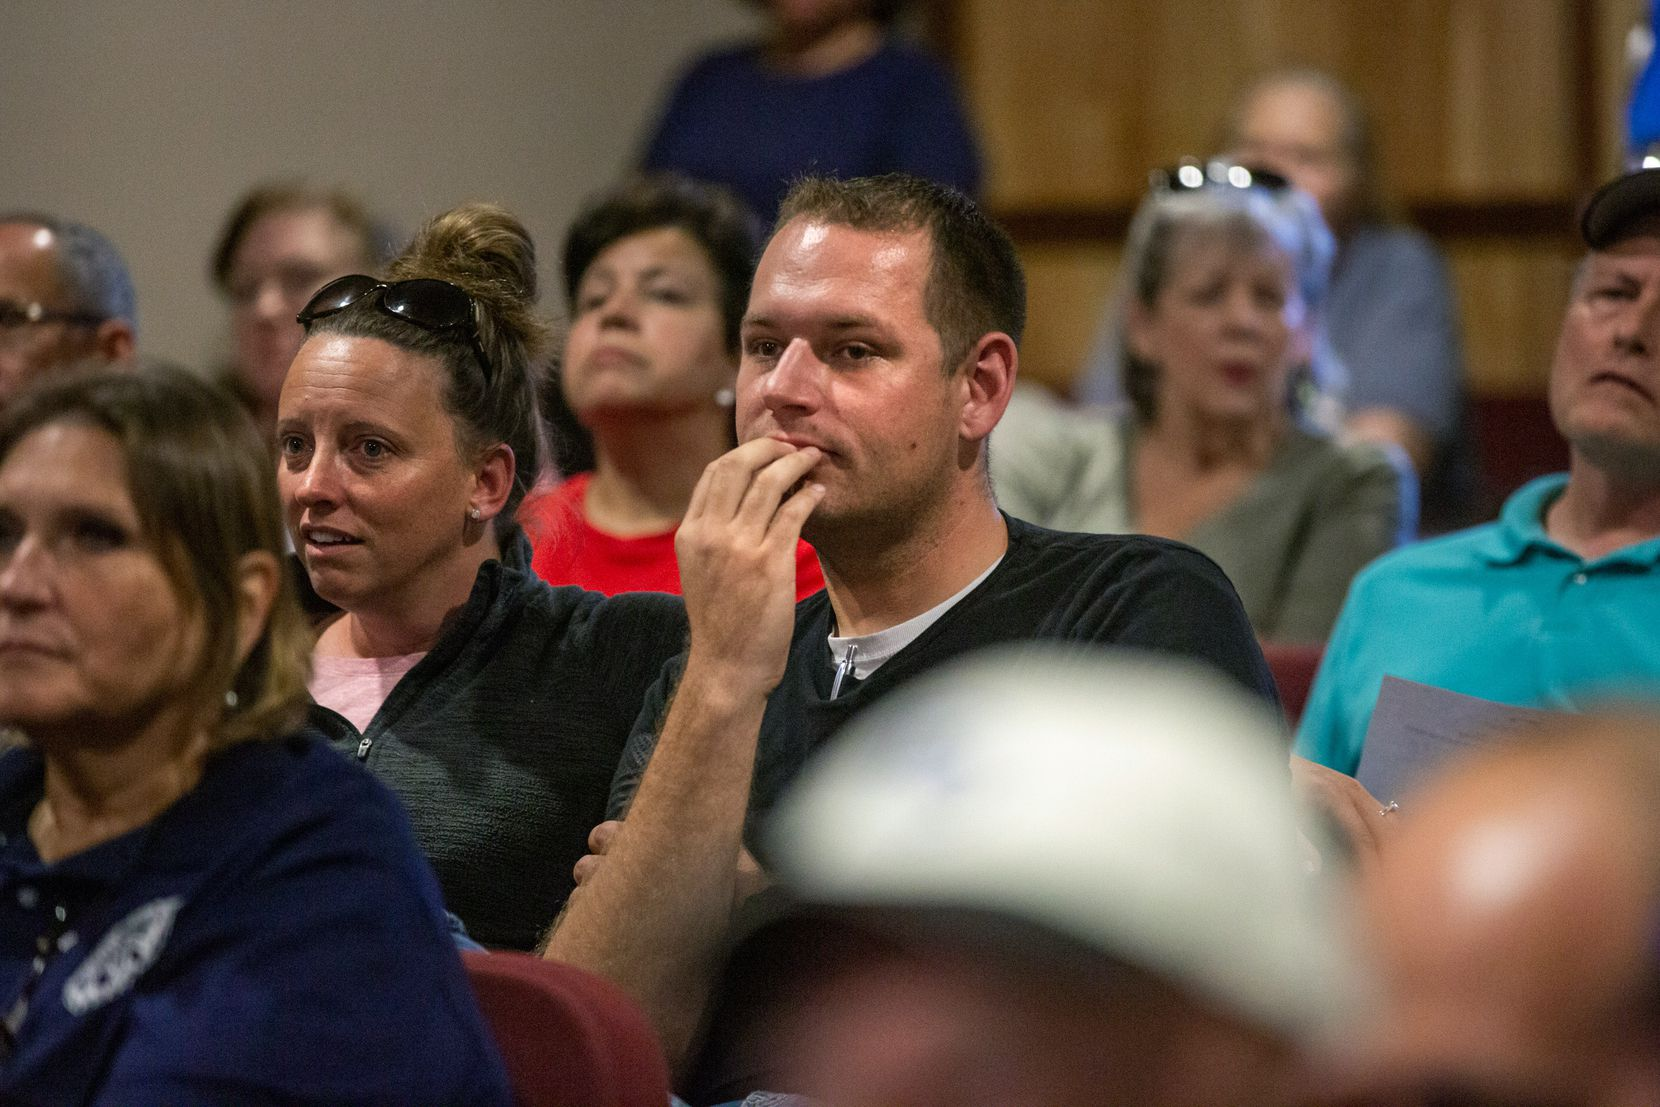 Frank Hall listens to council member comments during the city council meeting in Ferris, Texas, on Monday, Oct. 8, 2019. Monday's meeting included an agenda item to determine if the resignation of police chief Eddie Salazar would be accepted, and many attended the meeting to show support for Salazar.